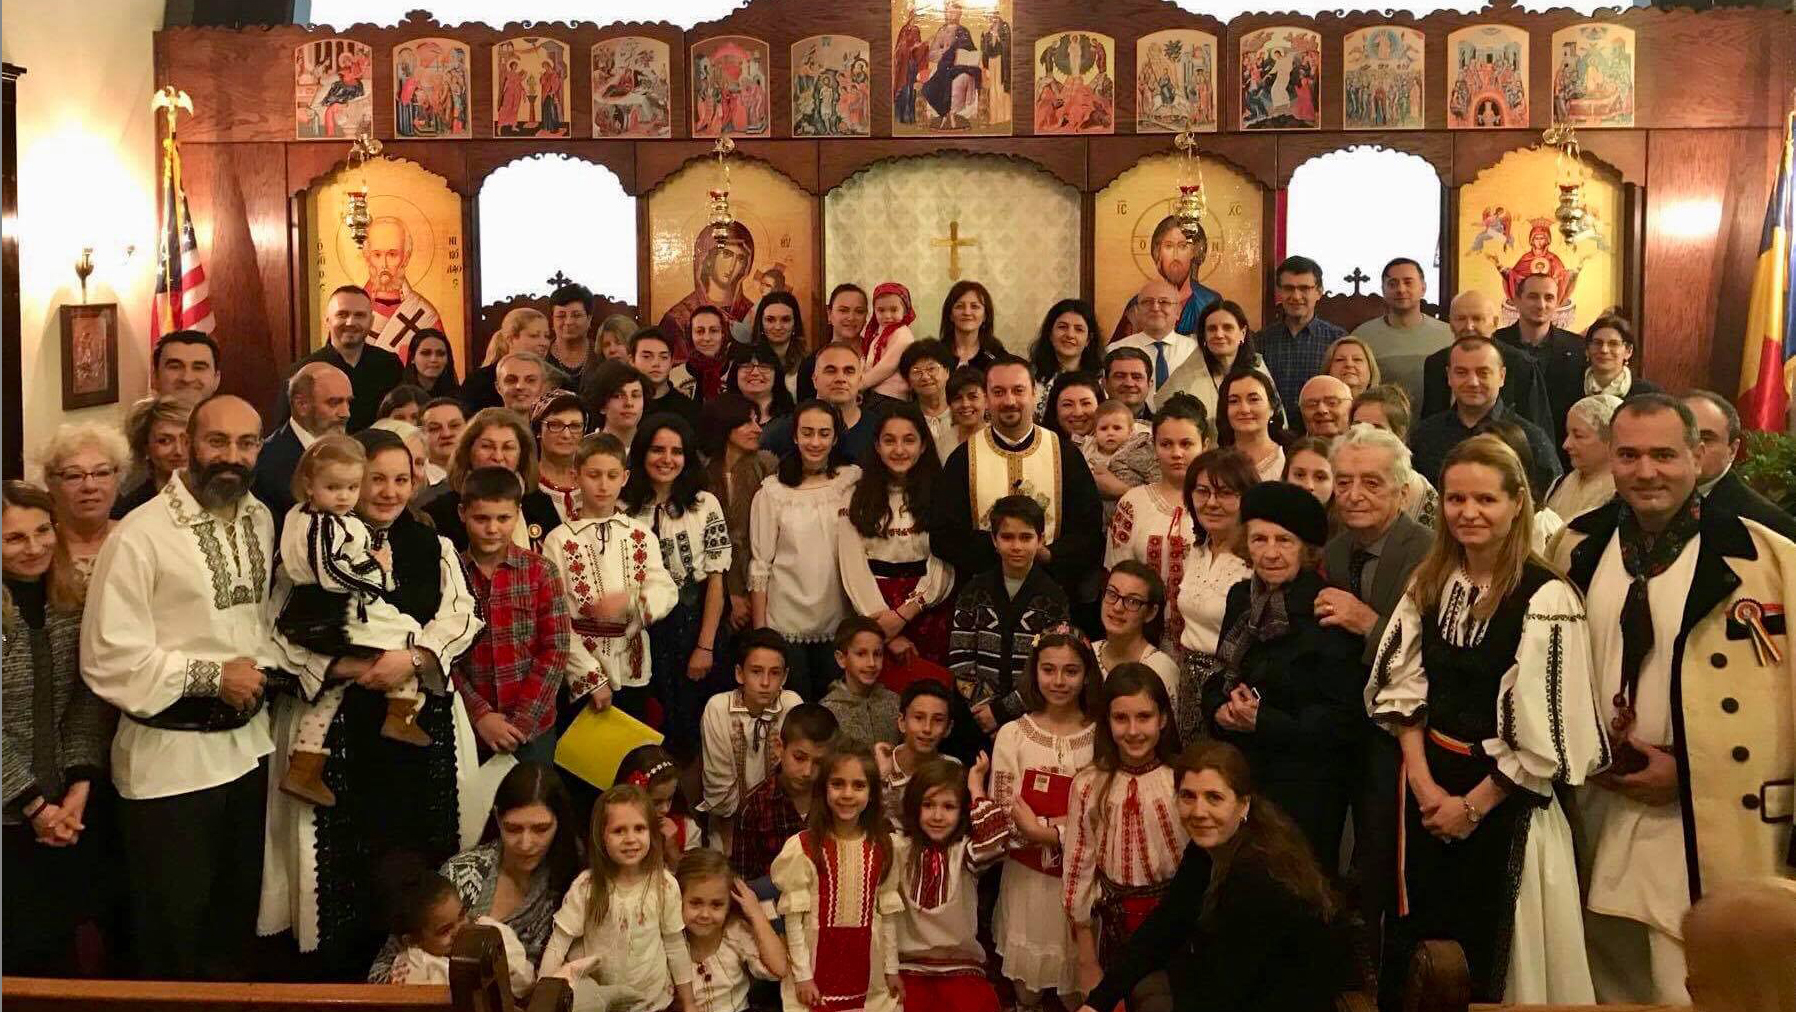 ....Comunitatea românescă strânsă în jurul Părintelui Ionut, preotul bisericii Izvorul Tămăduirii din New Jersey..The Romanian Community of the Life Giving Fountain Romanian Orthodox Church....